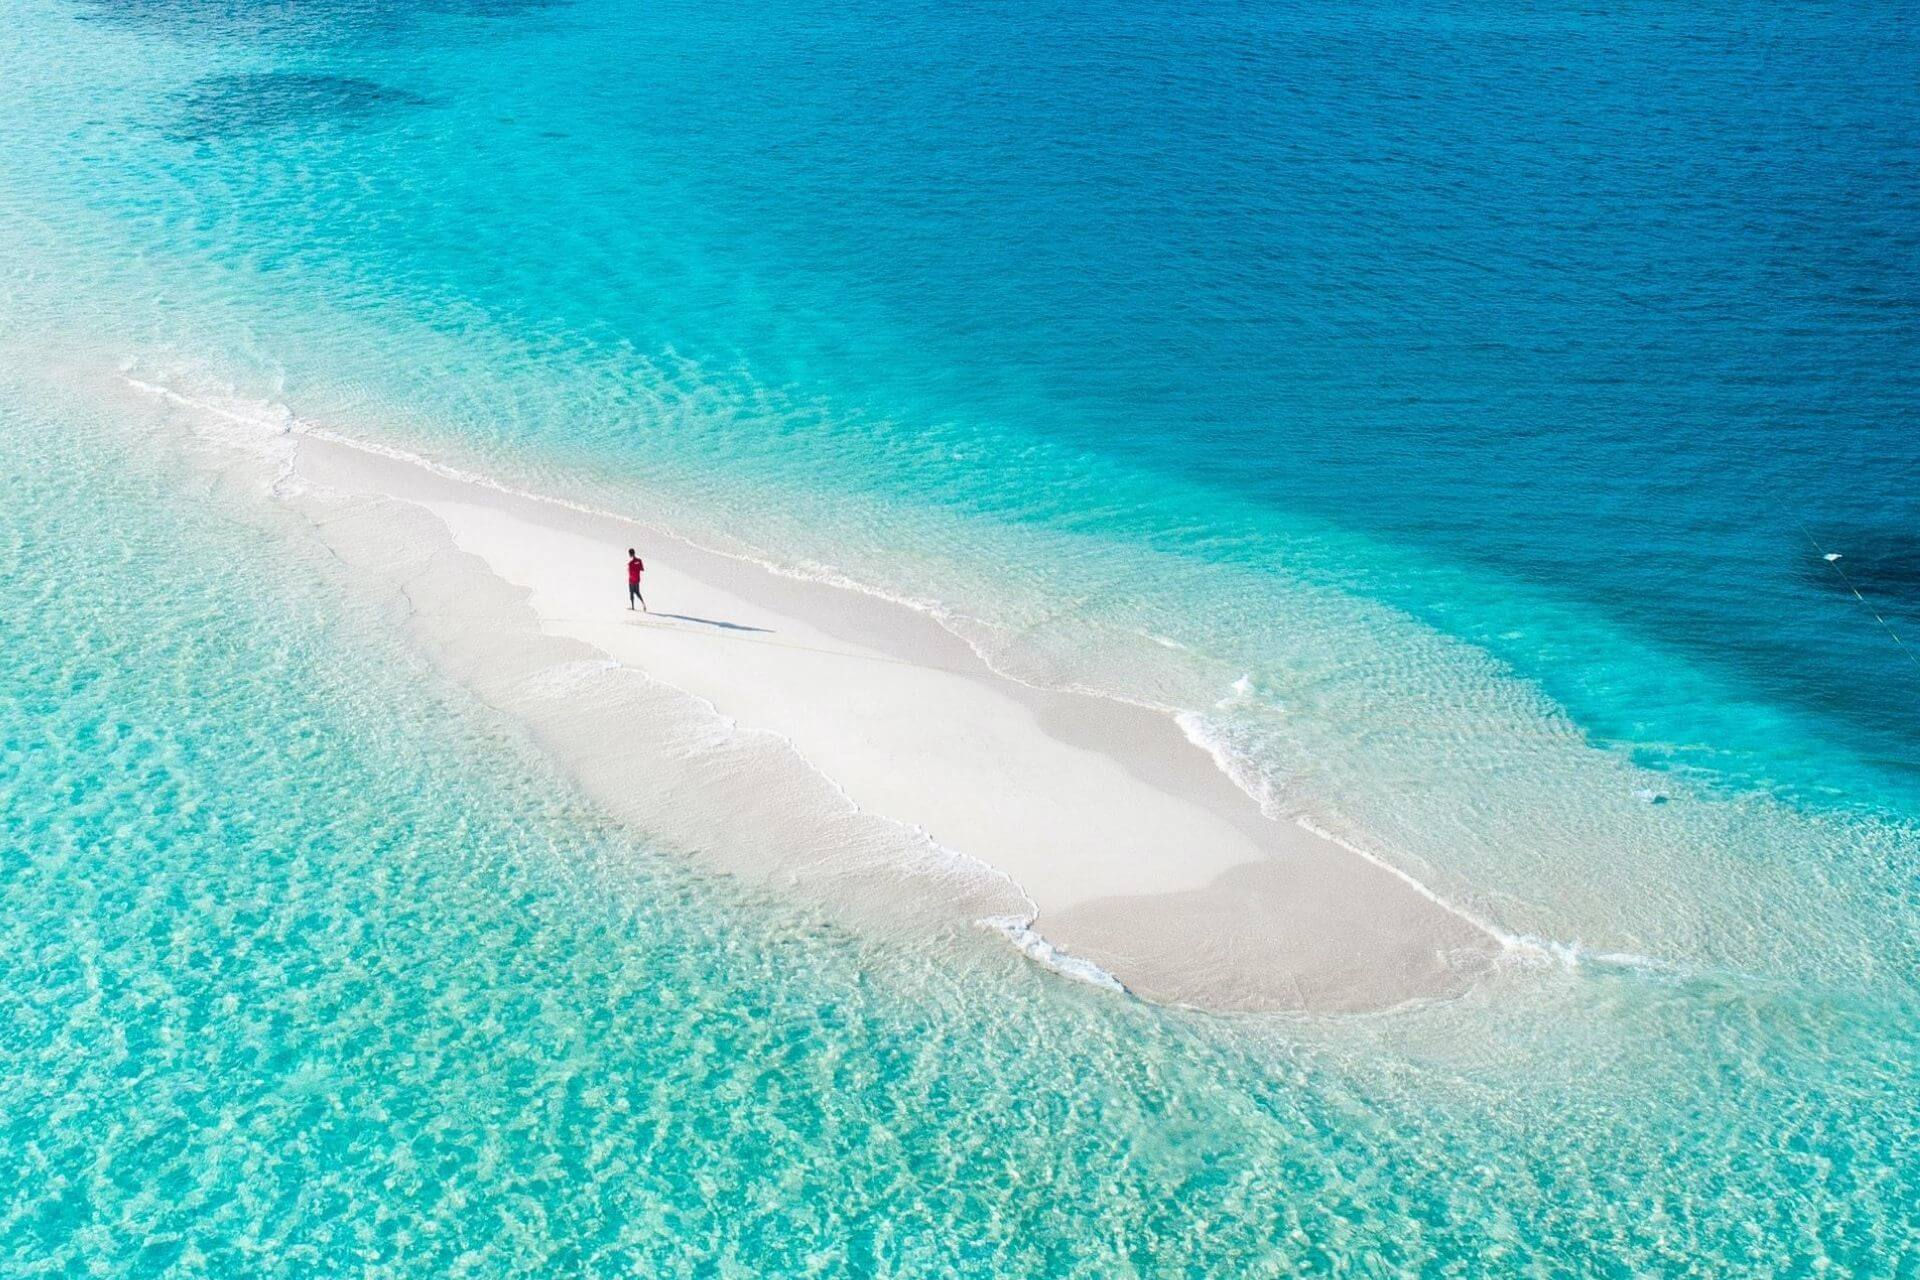 6 Hour Sandbank Trip in Maldives with Price & Itinerary